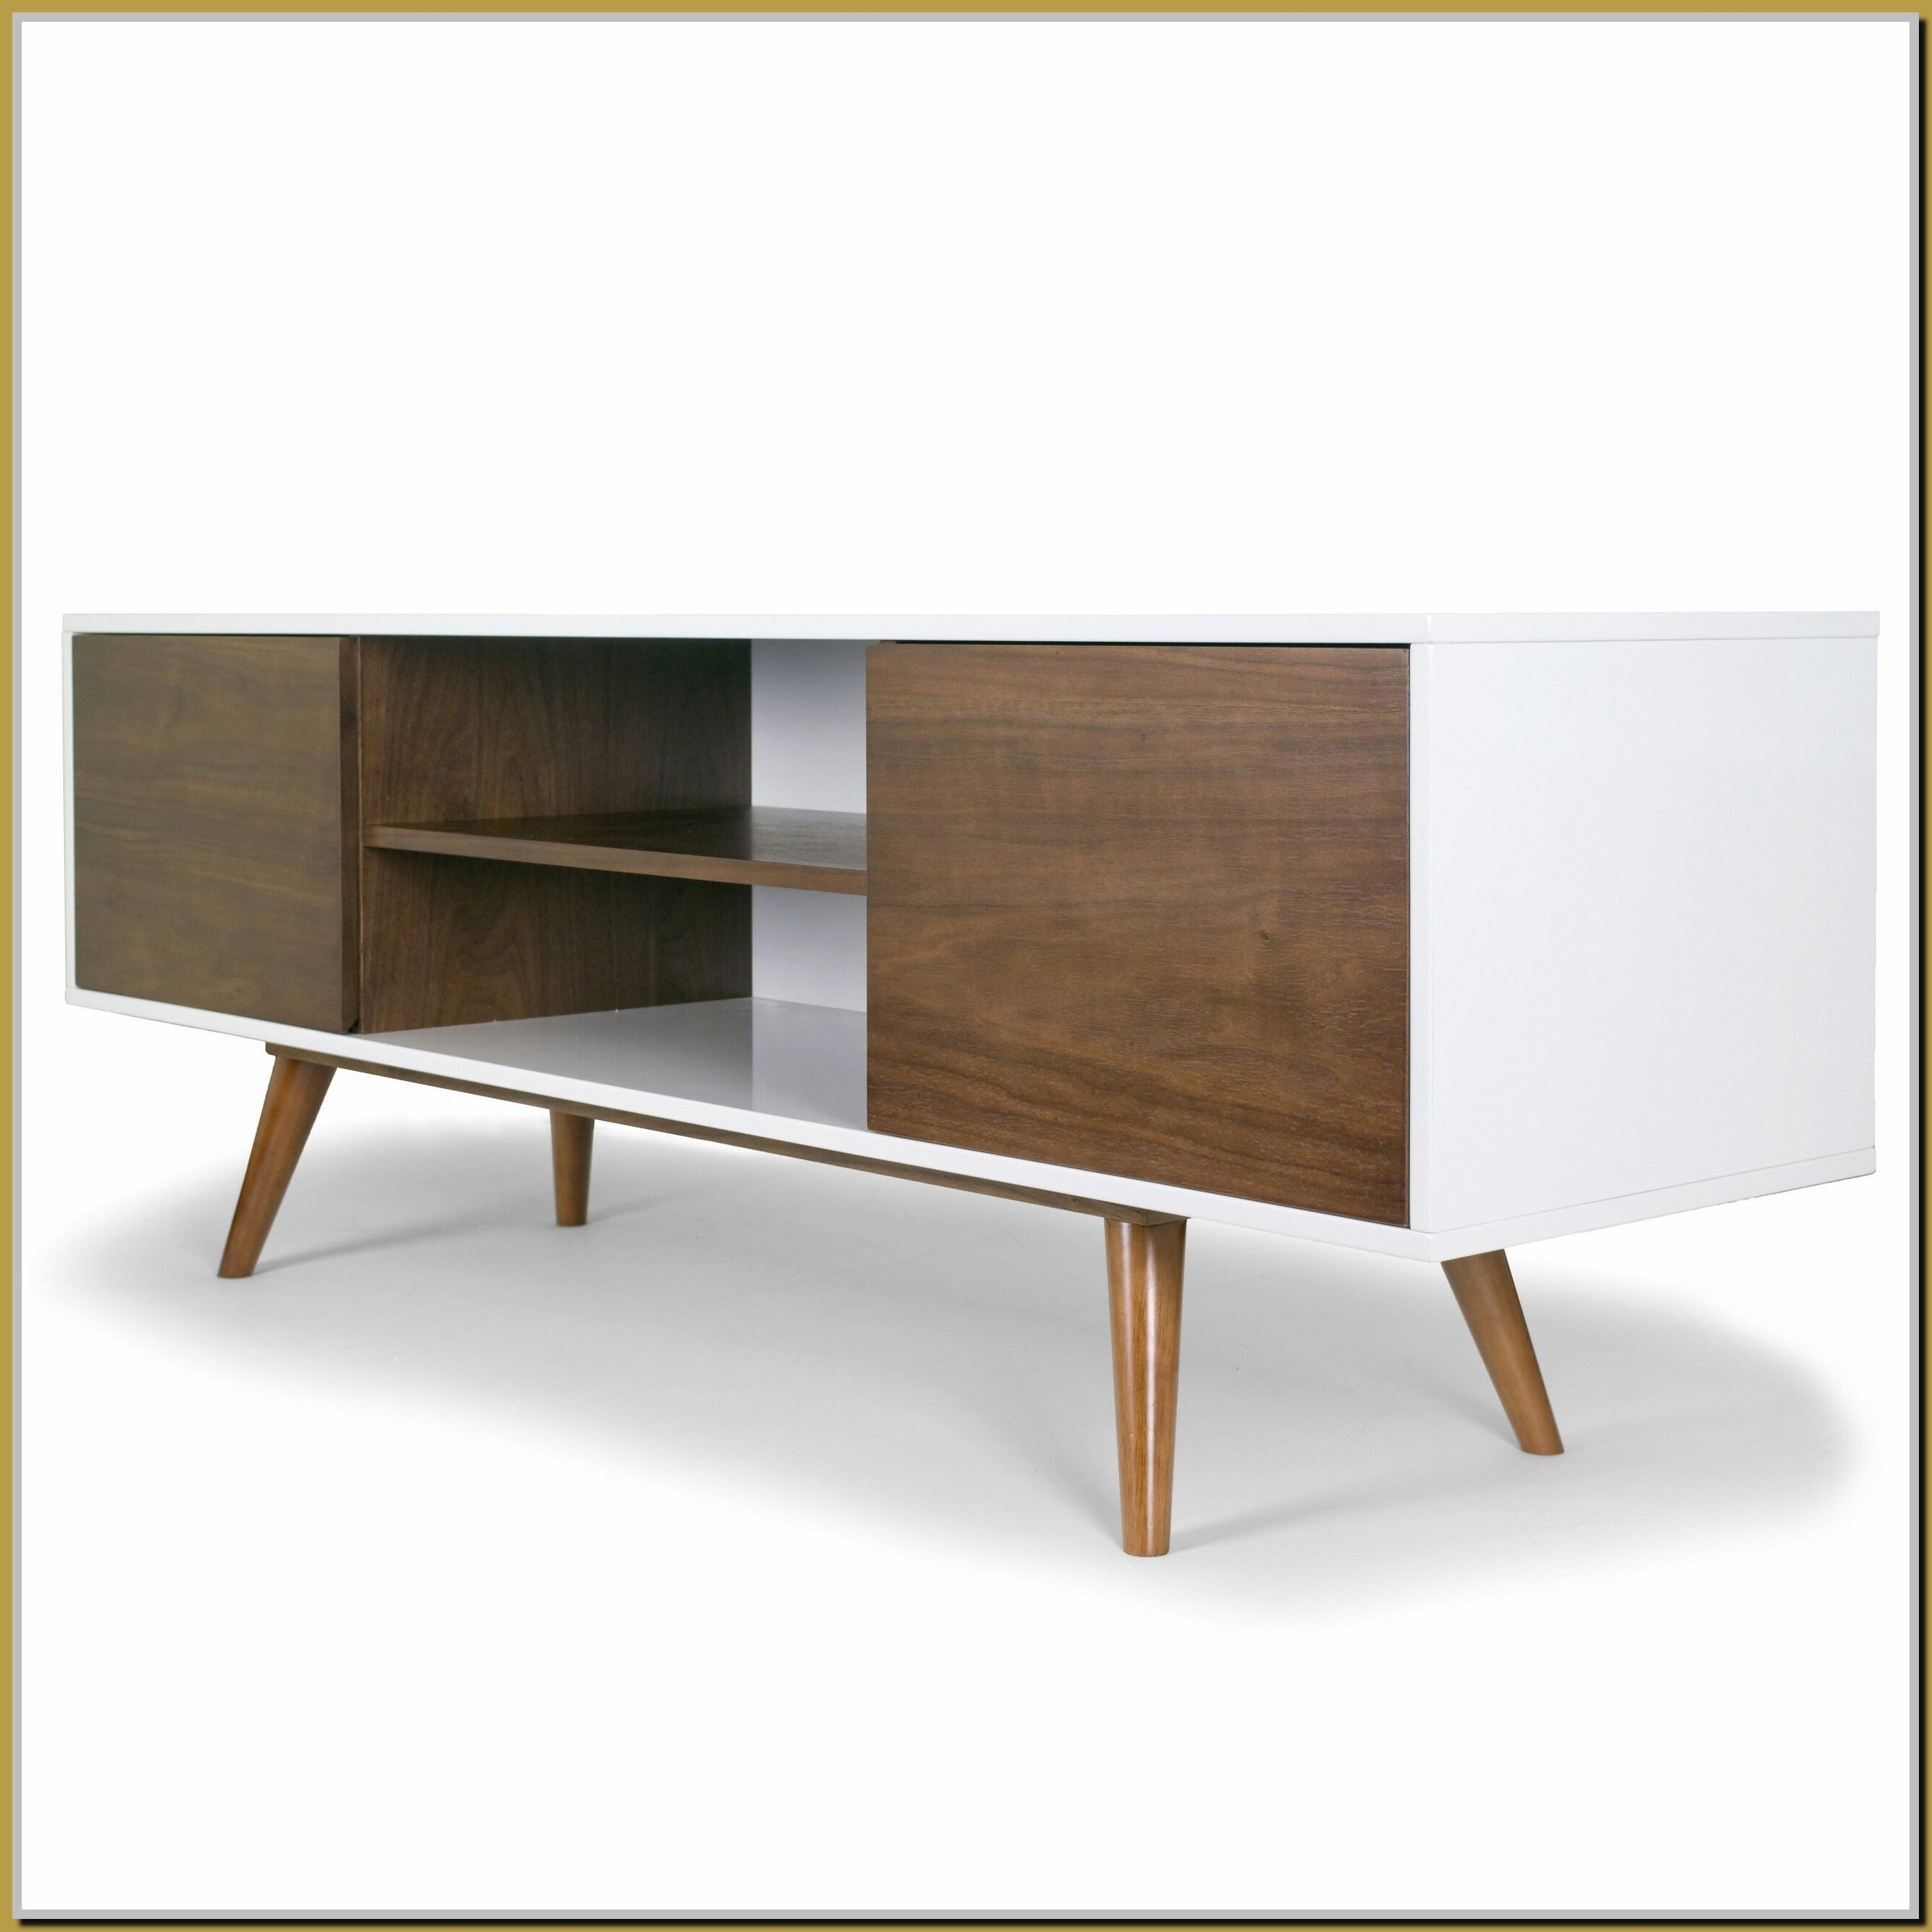 47 Reference Of Tv Stand Scandinavian Thin In 2020 Scandinavian Tv Stand Tv Stand Scandinavian Shelves